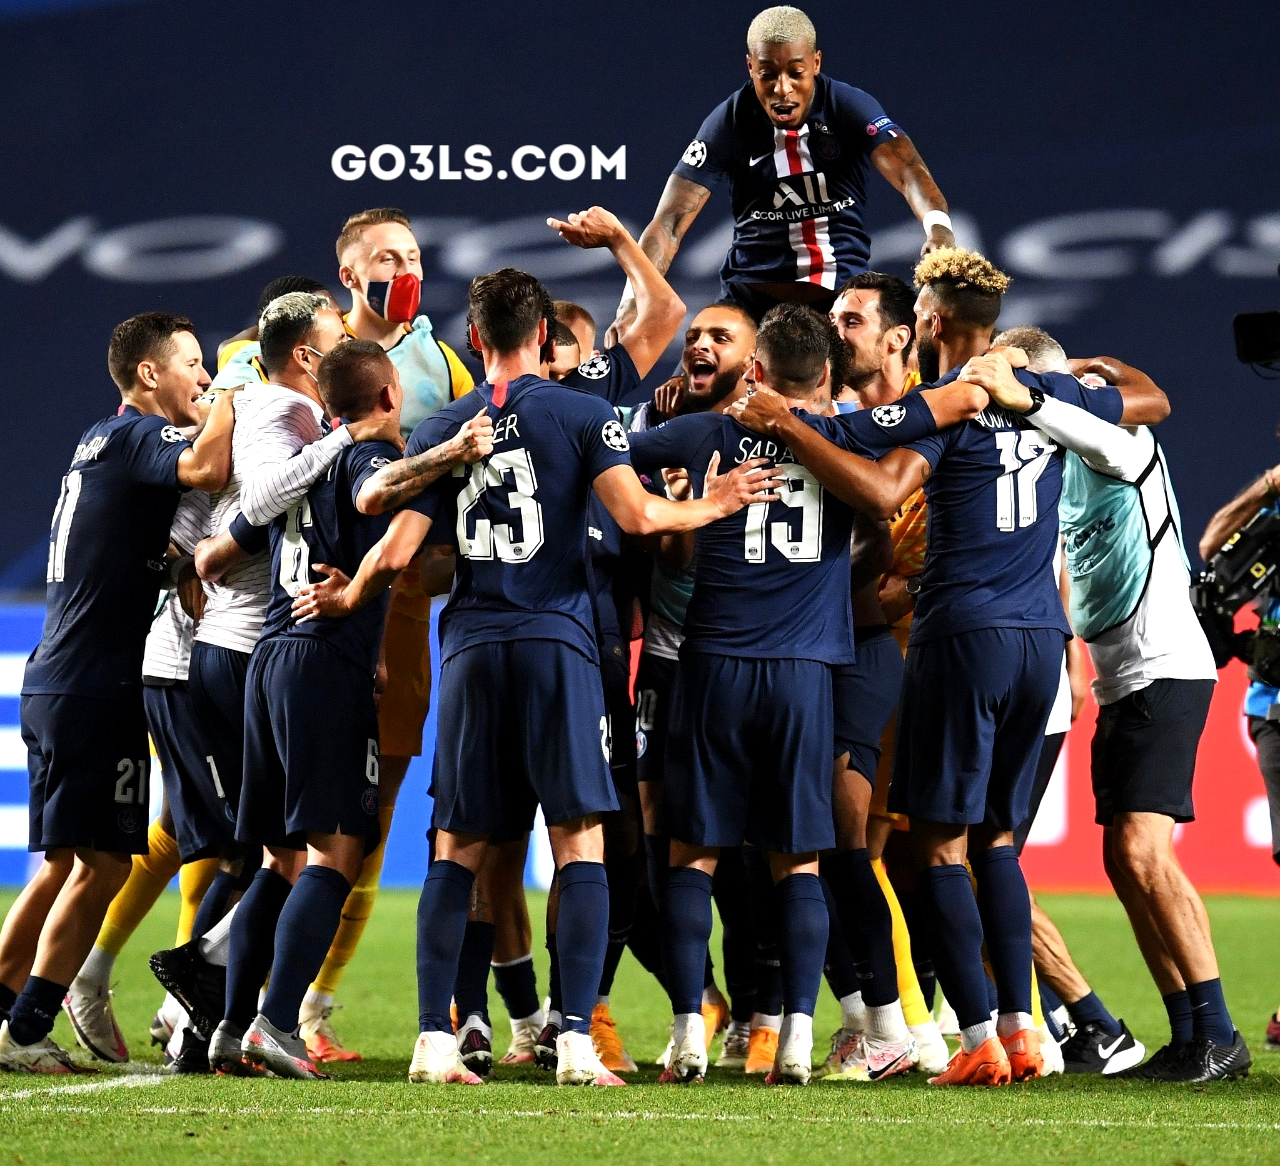 Celebrate the Paris Saint-Germain players